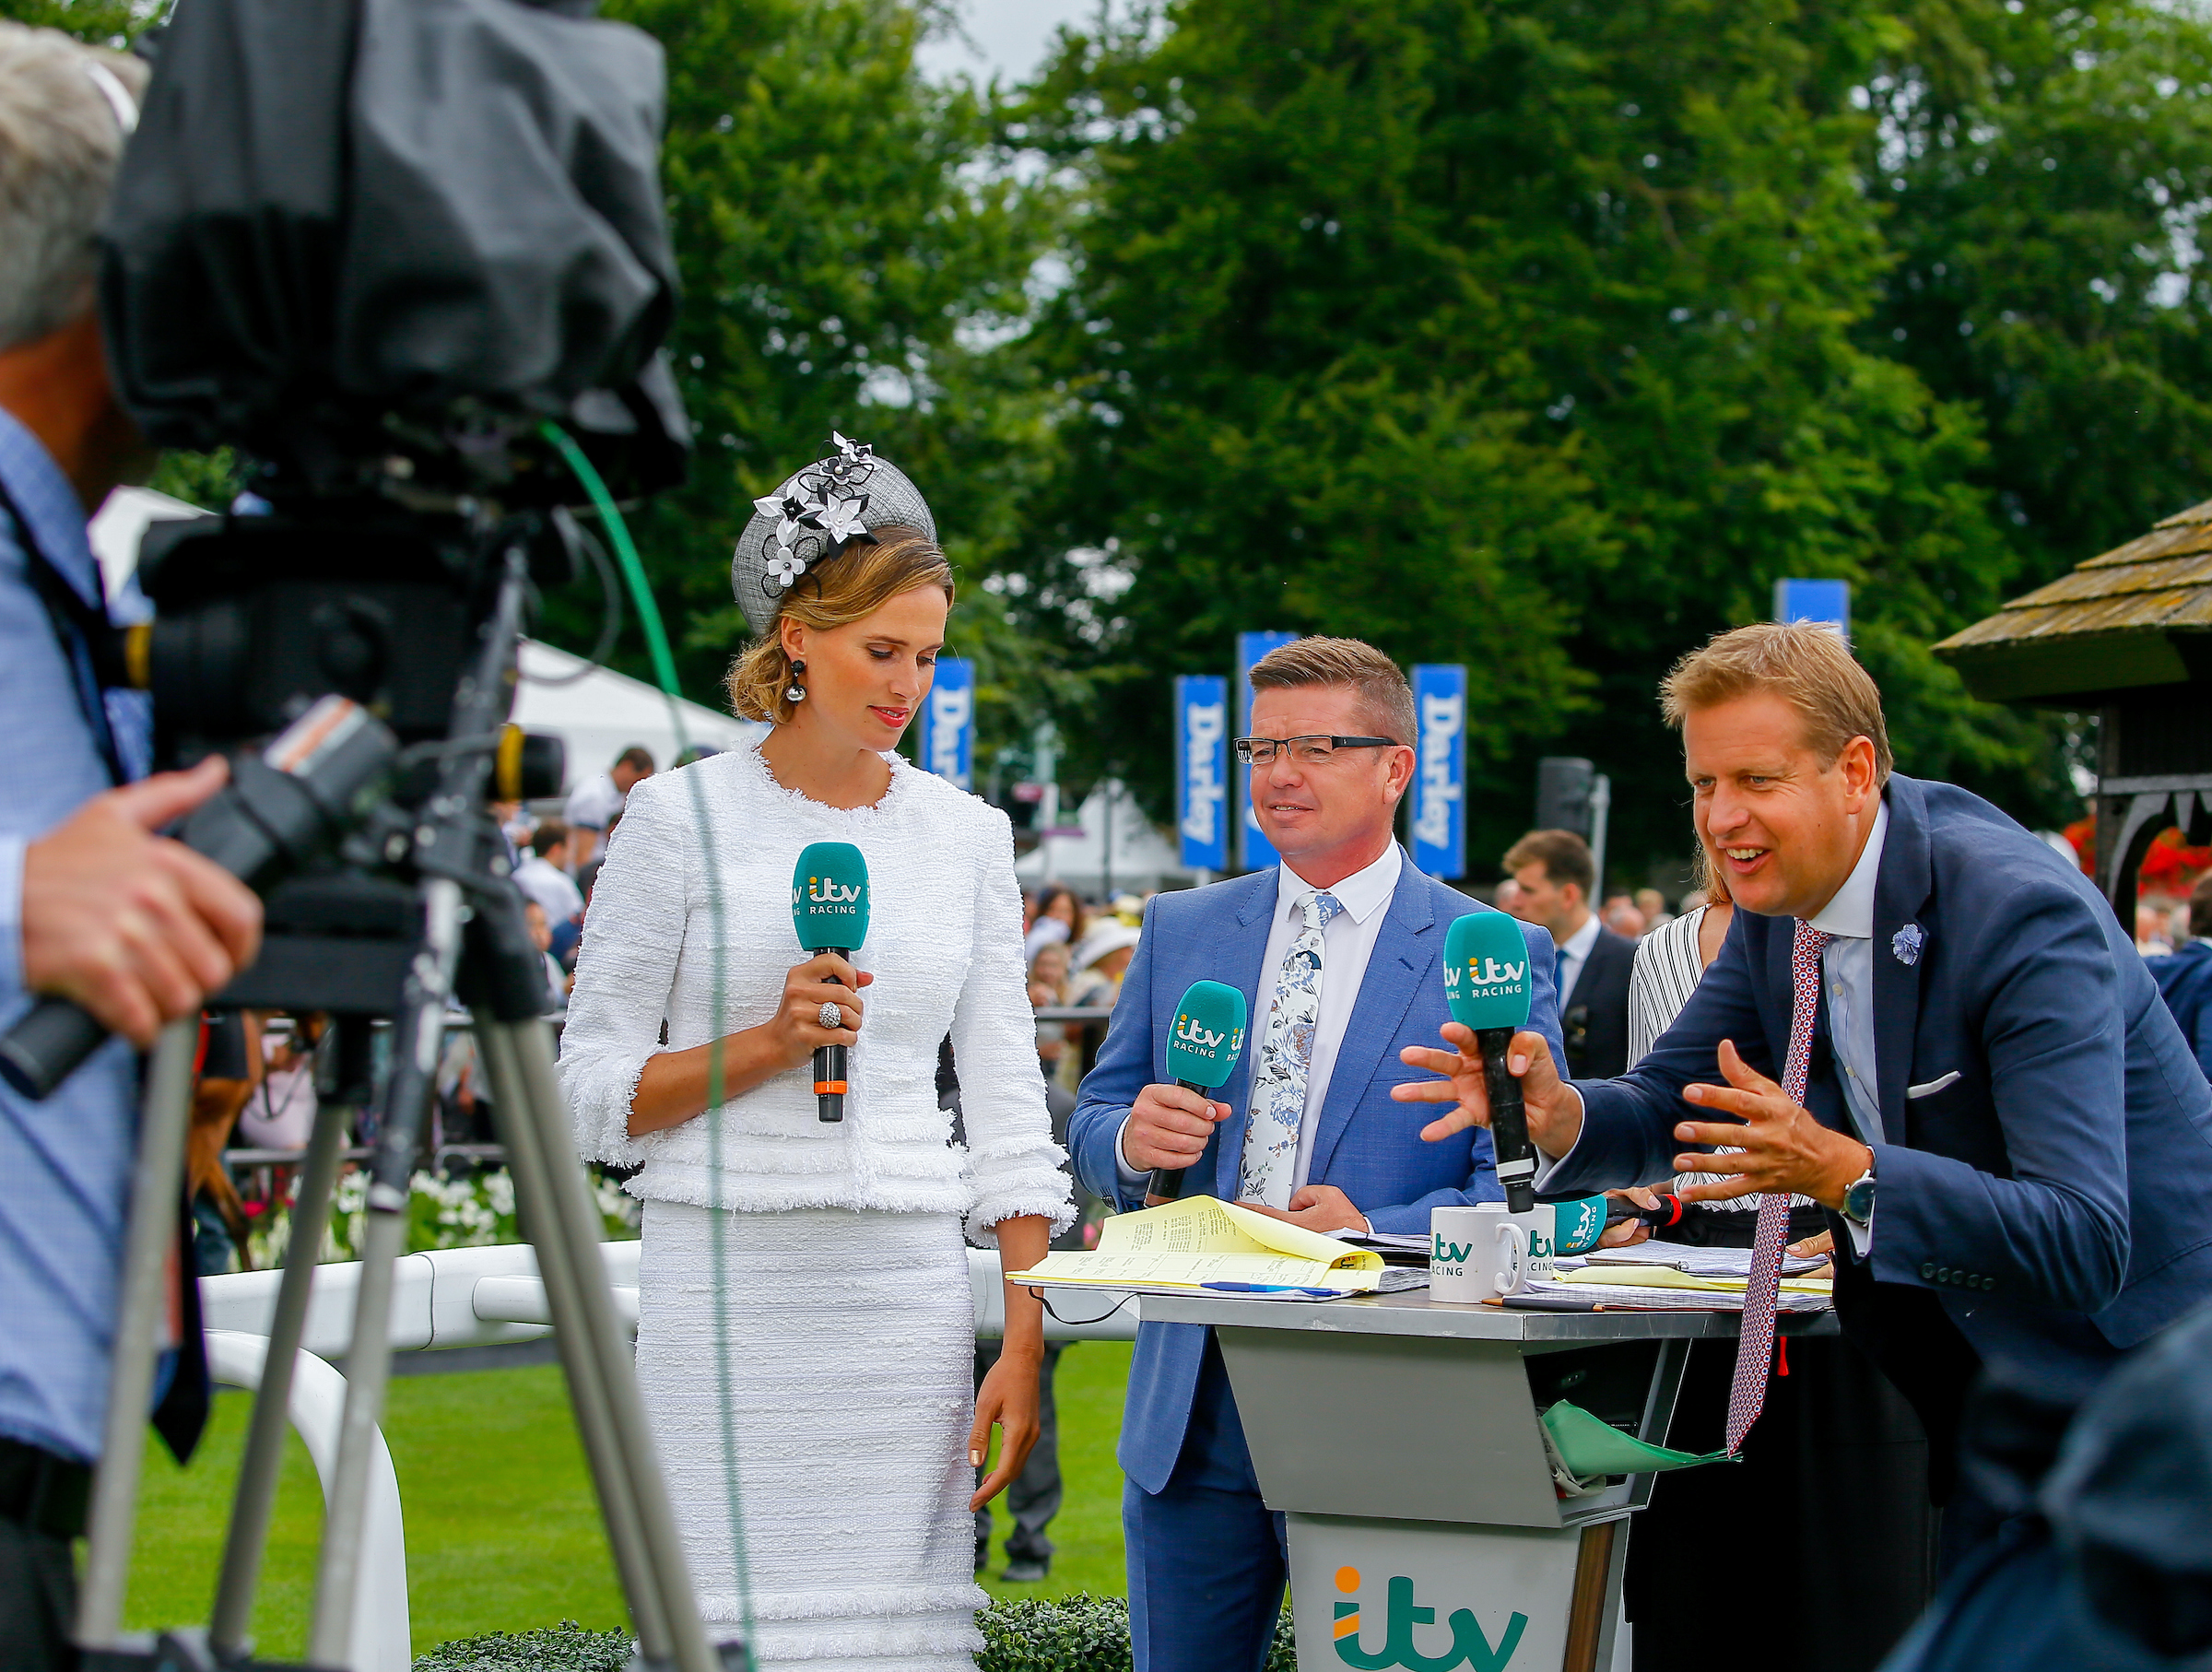 ITV EXTENDS EXCLUSIVE FREE TO AIR RACING UNTIL 2023